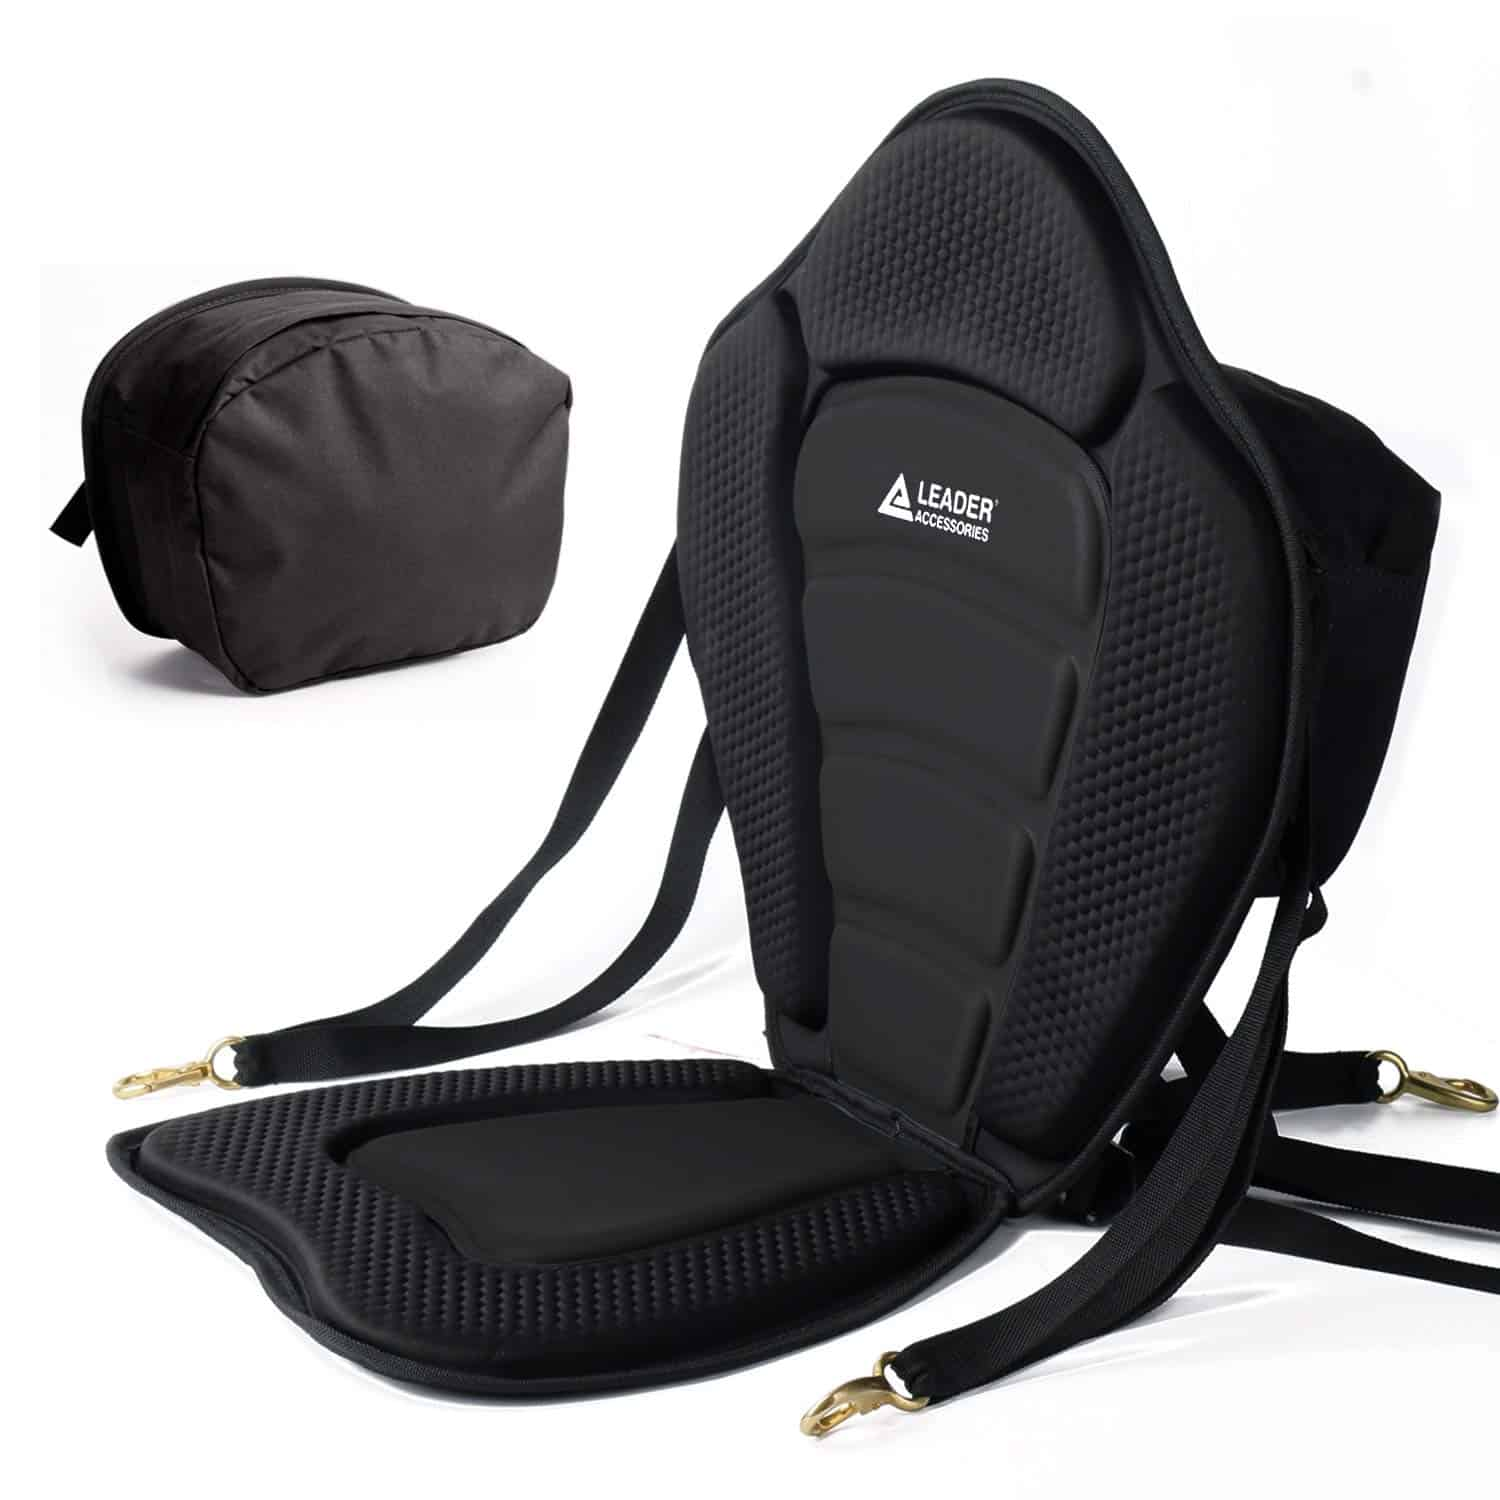 Leader Accessories Luxury Kayak Boat Seat